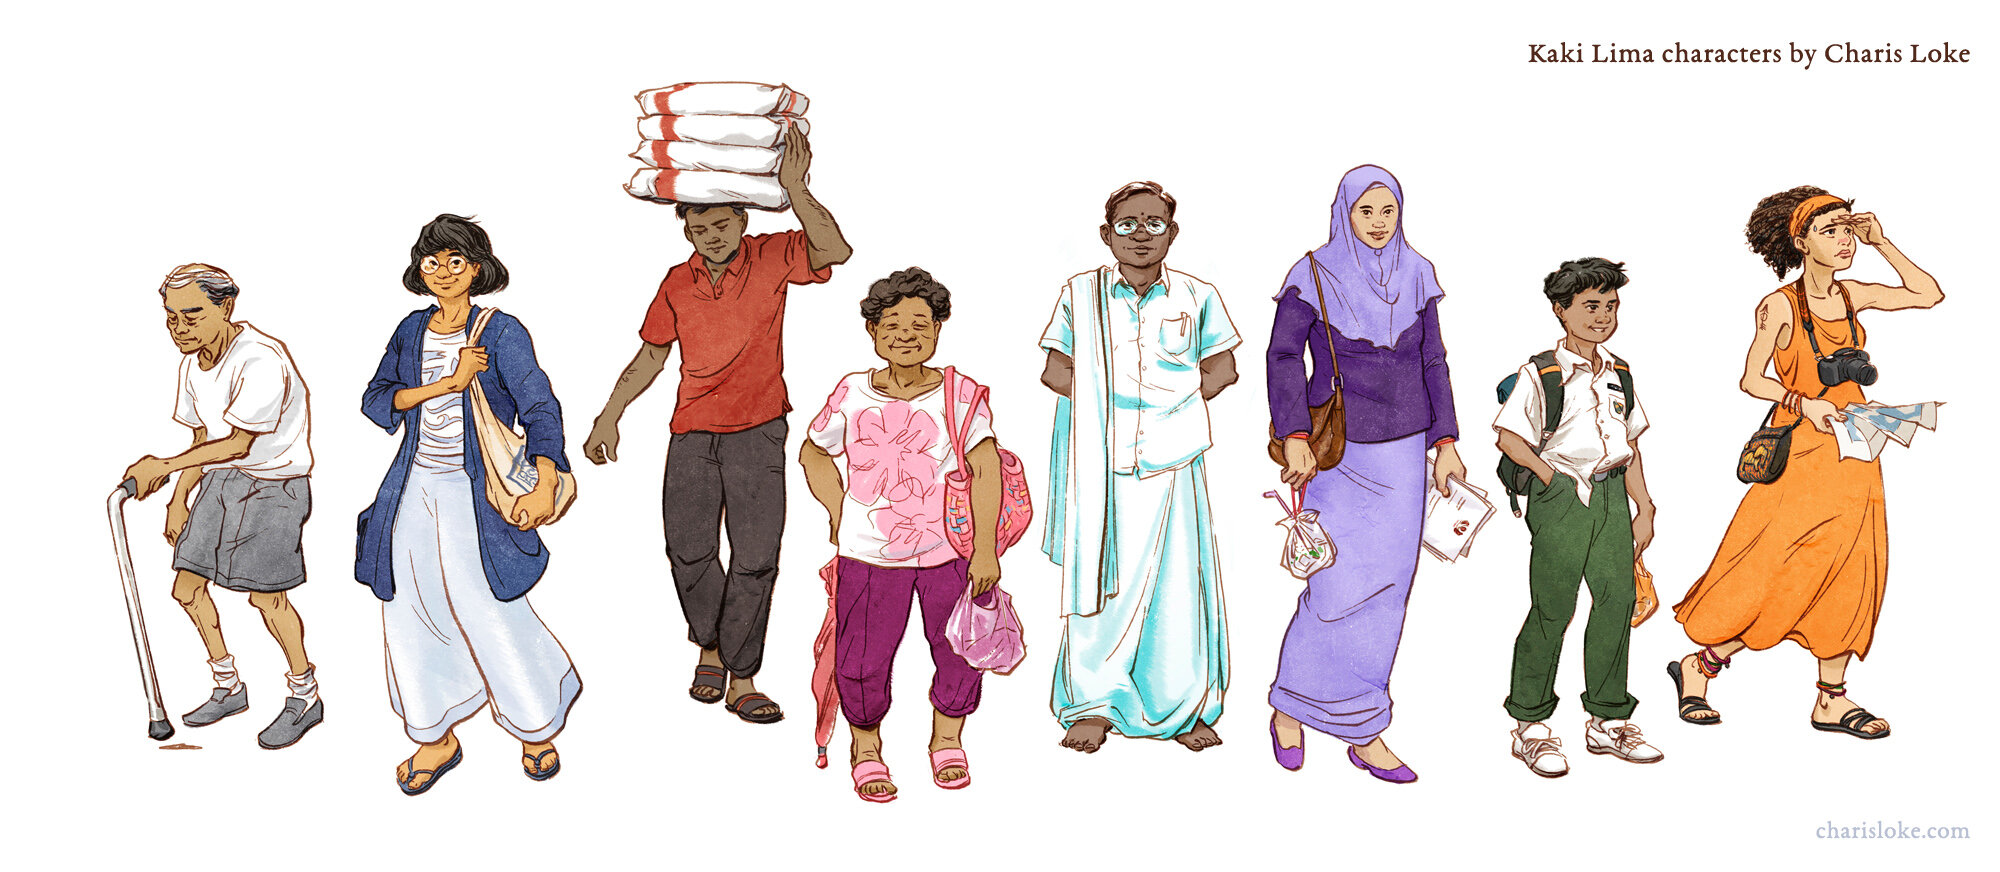 Character art for the tabletop boardgame KAKI LIMA, based on pedestrian walkways in historic George Town, Penang.